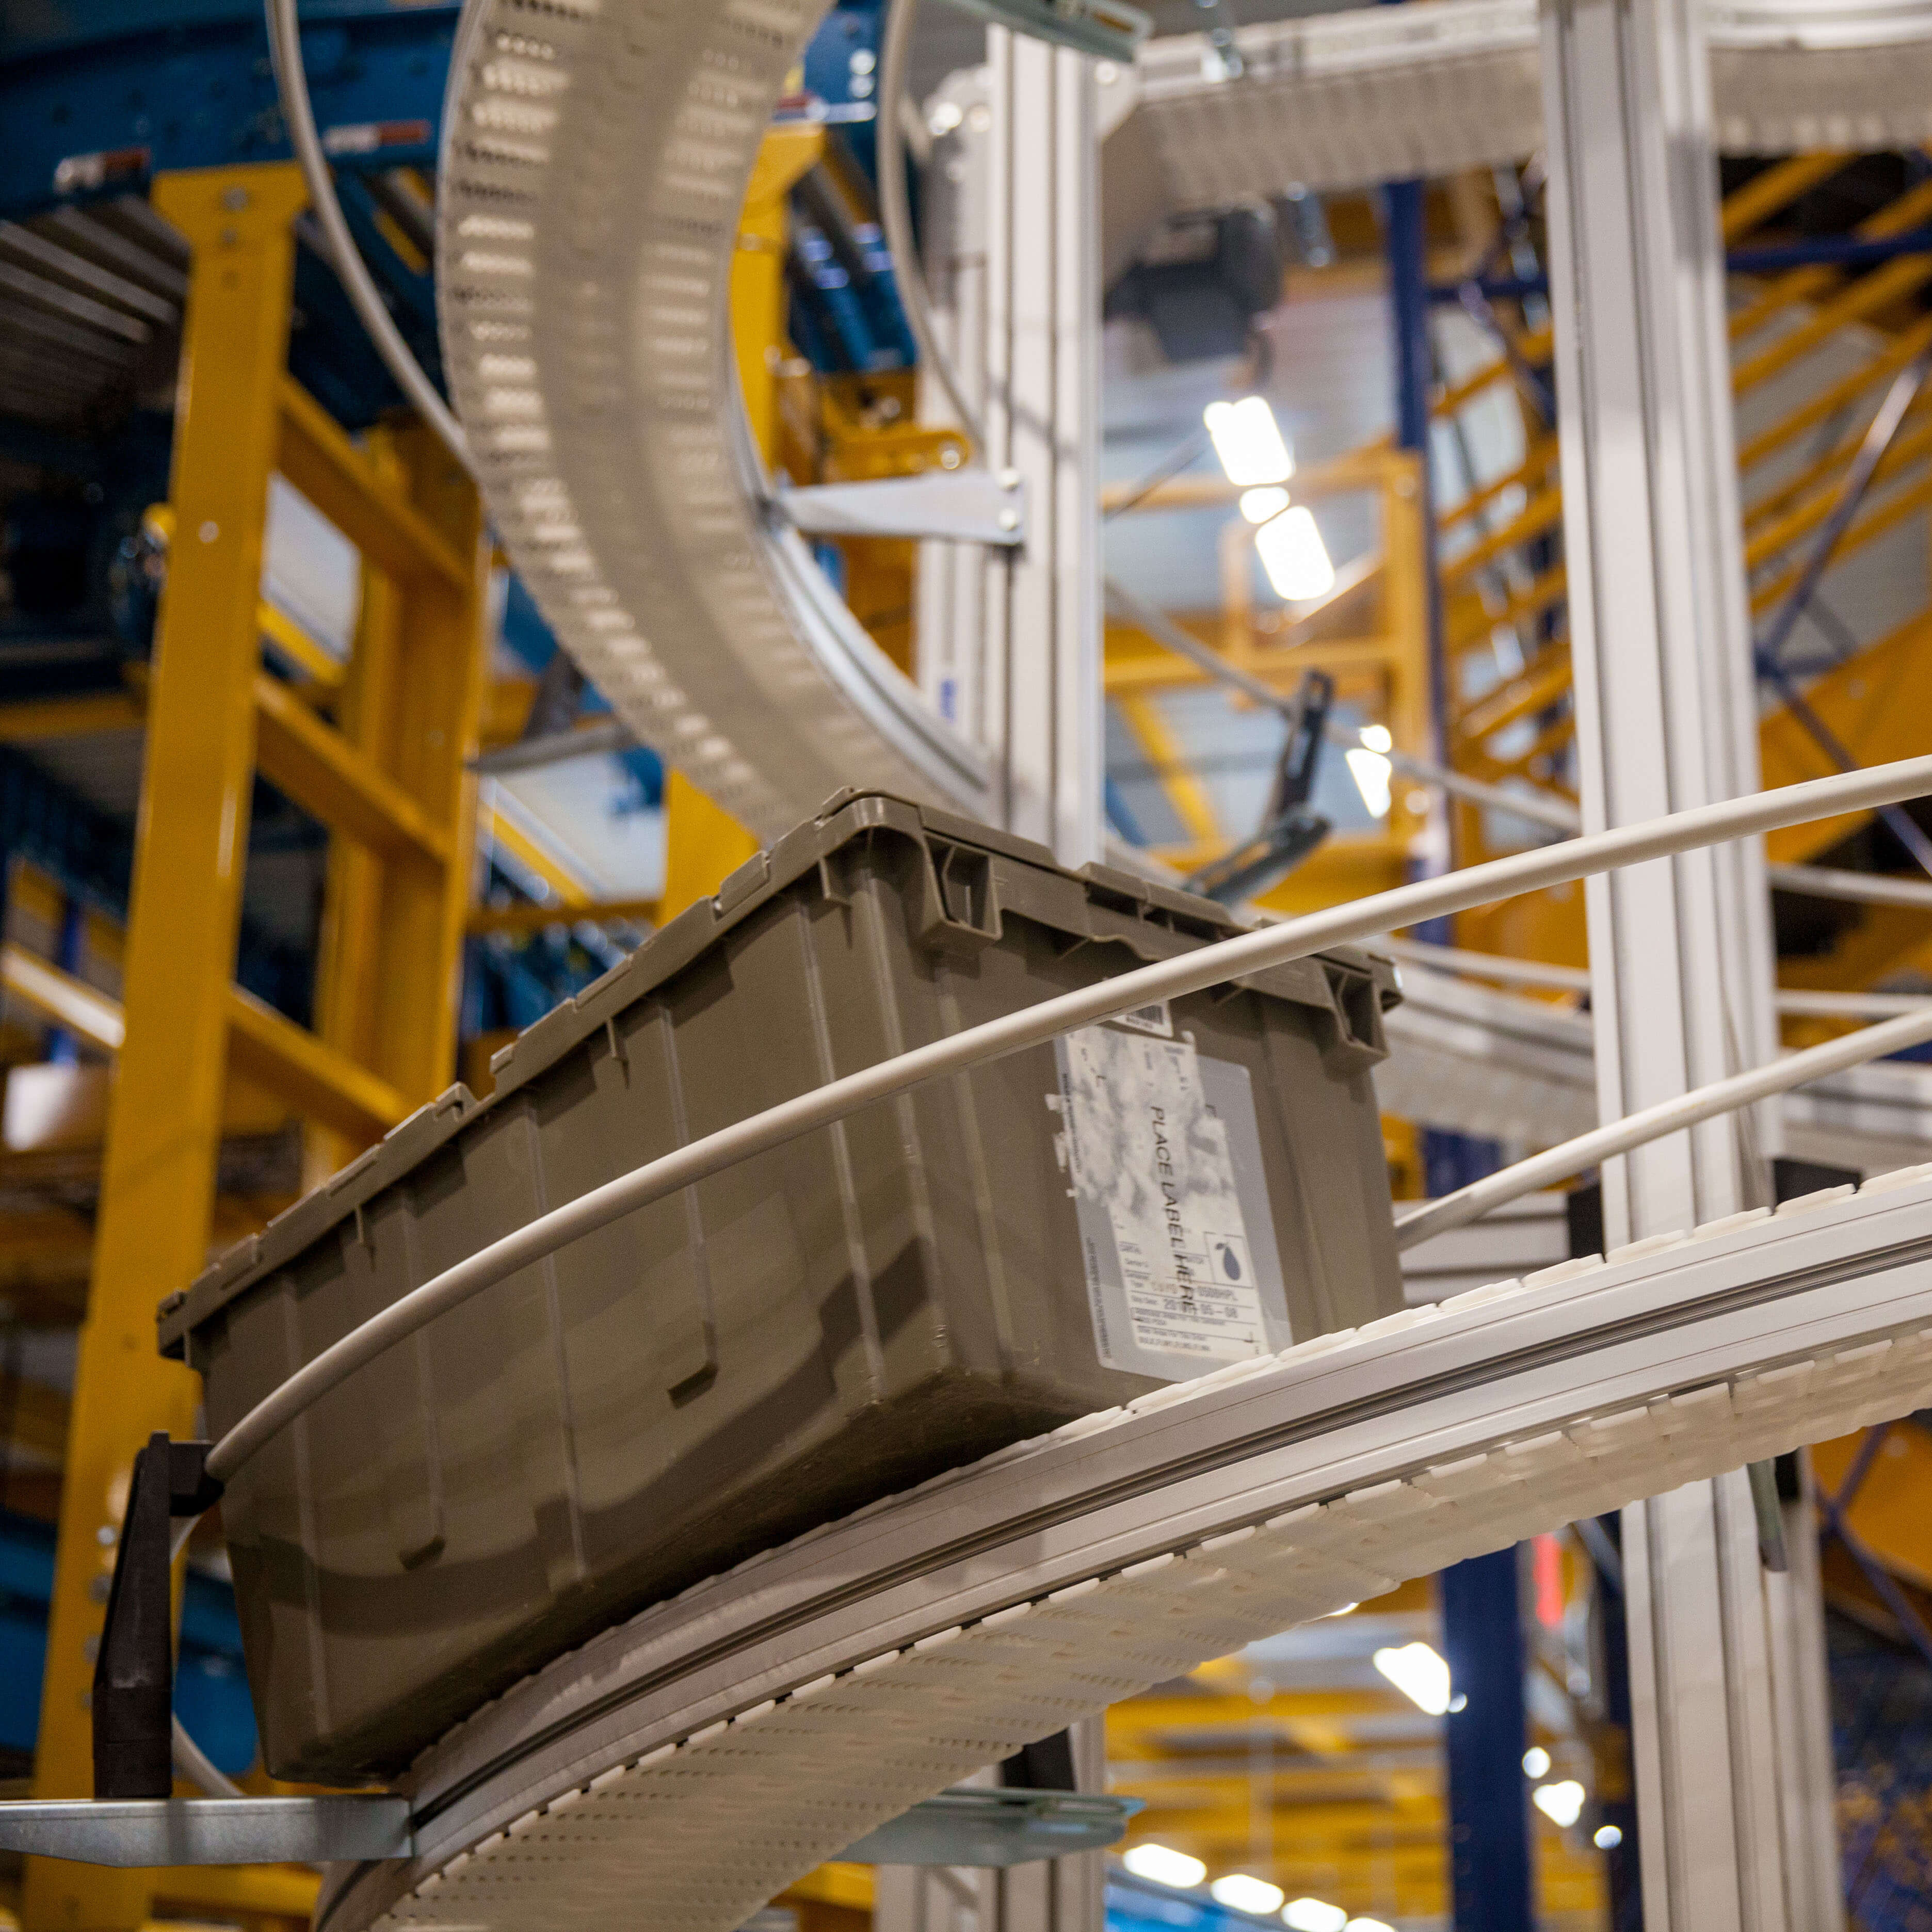 Plastic belt conveyor used to move plastic totes.